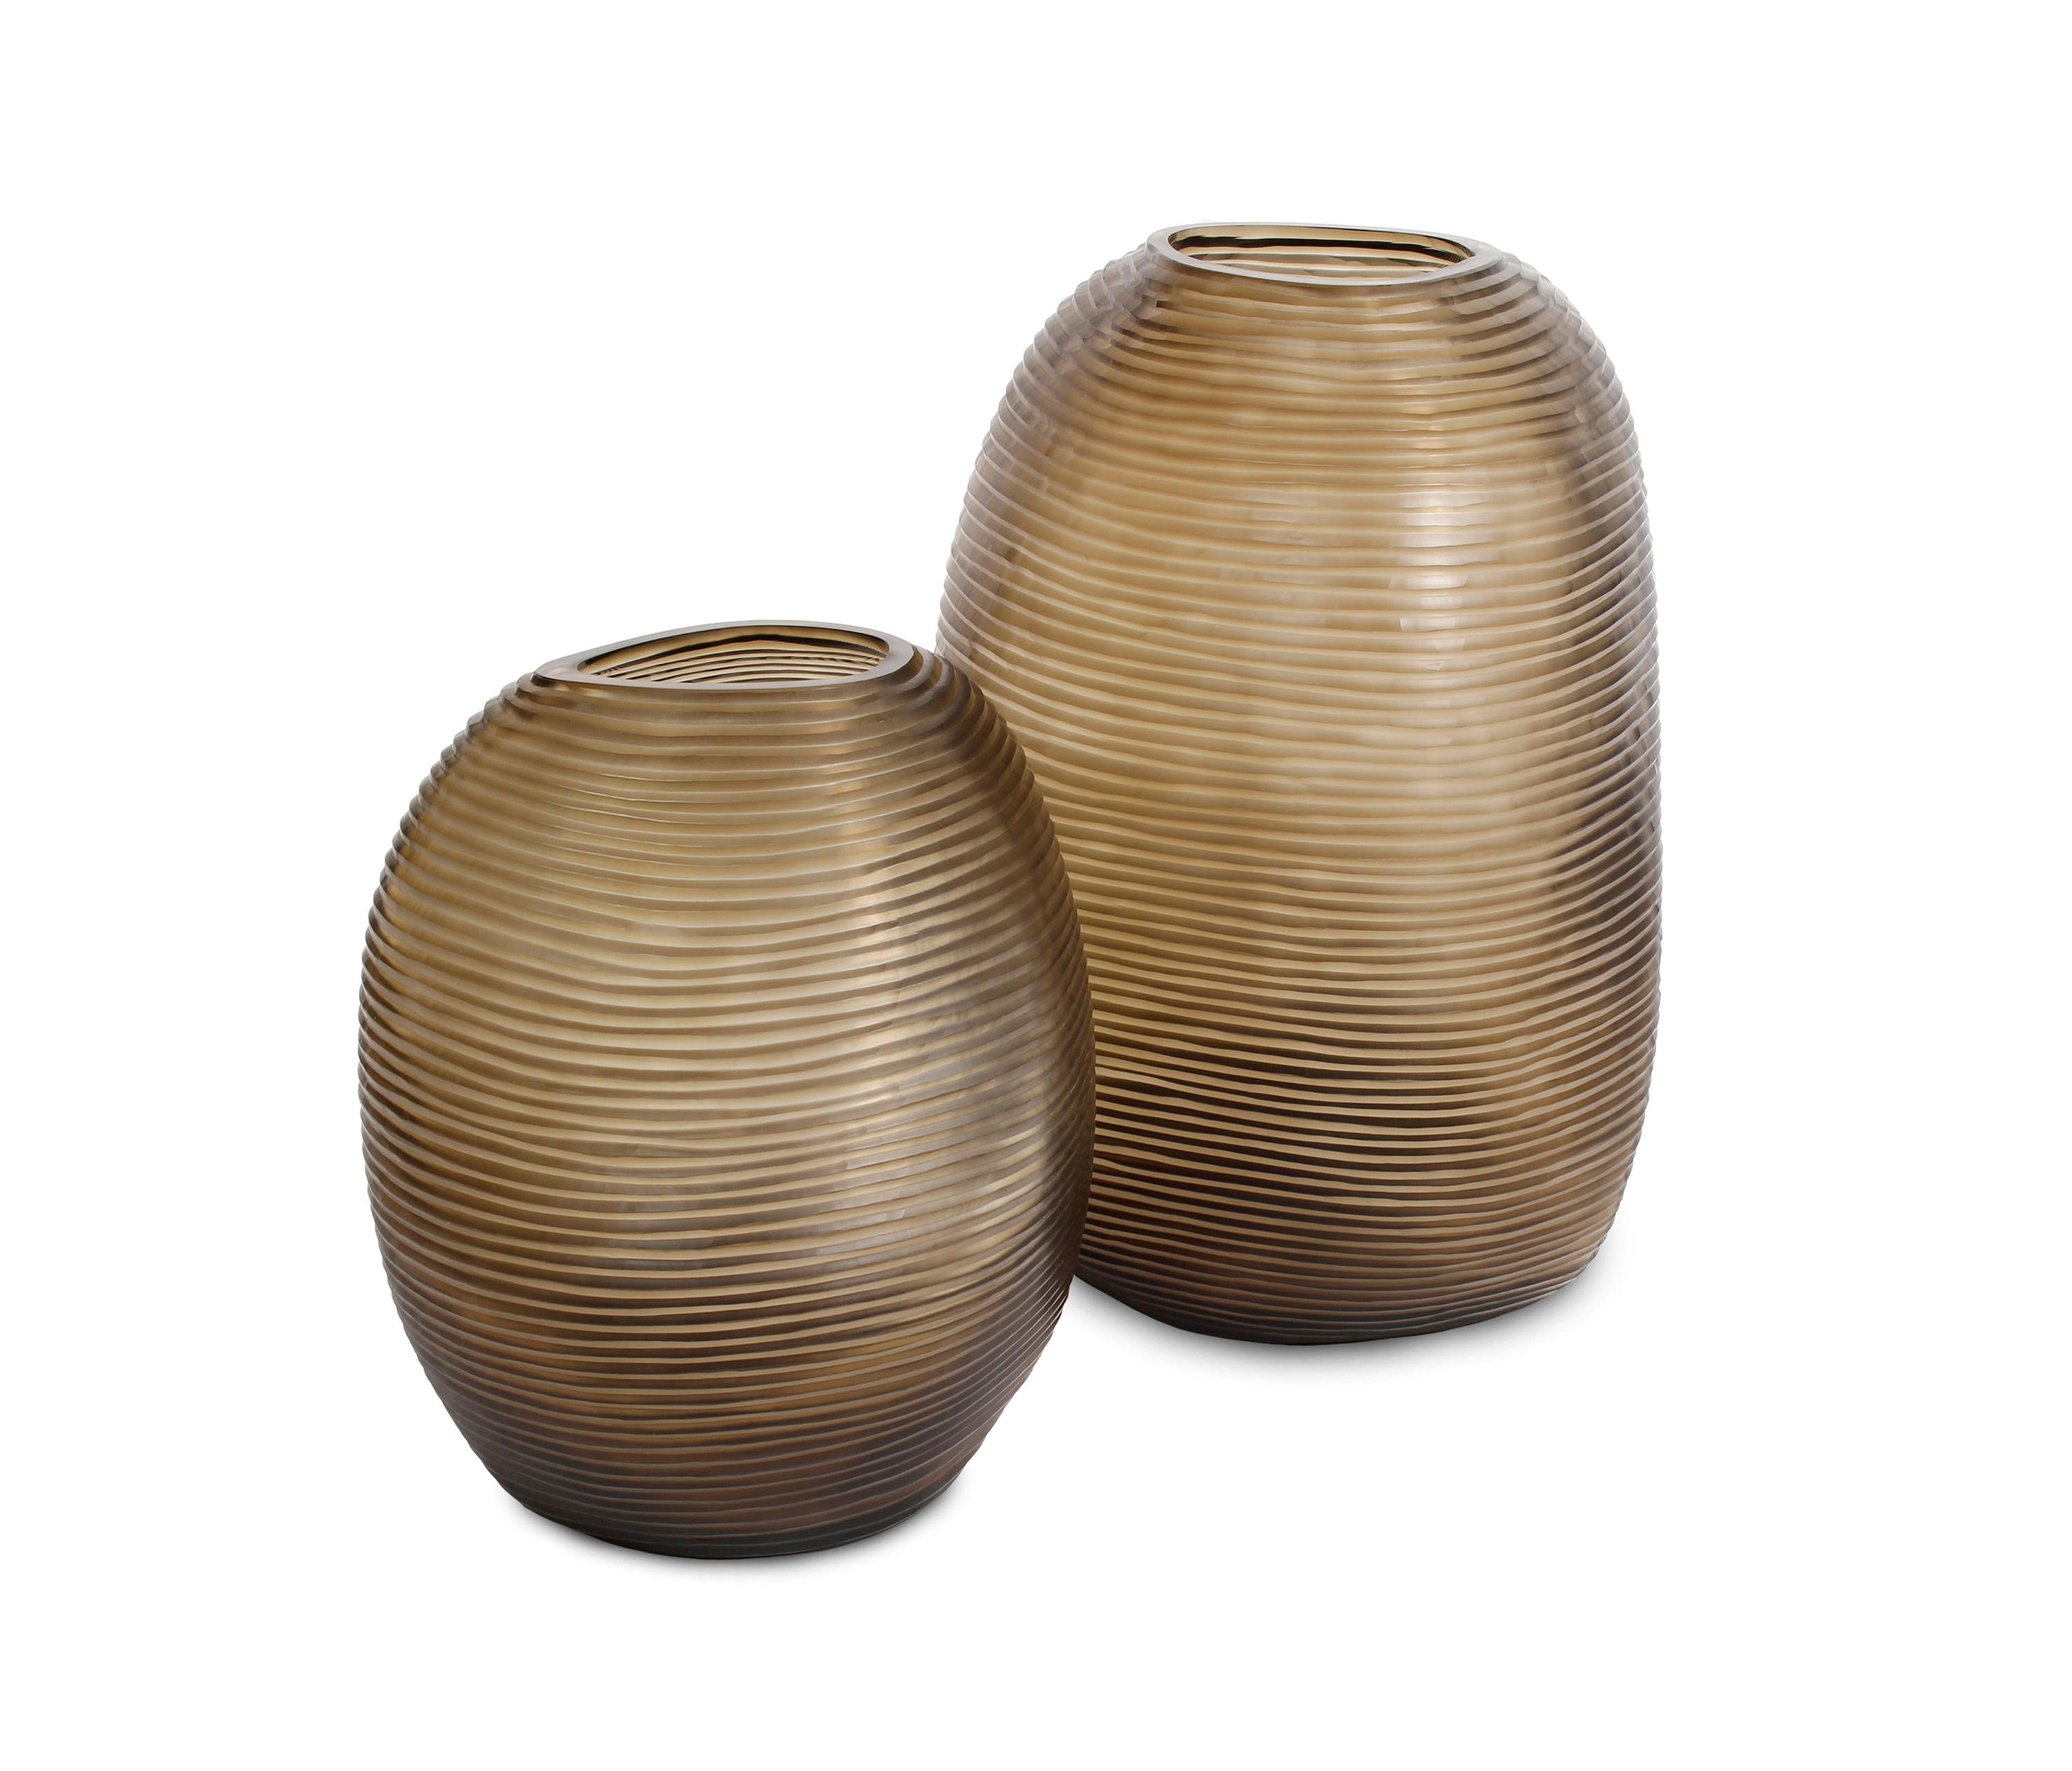 patara round vases from guaxs architonic. Black Bedroom Furniture Sets. Home Design Ideas